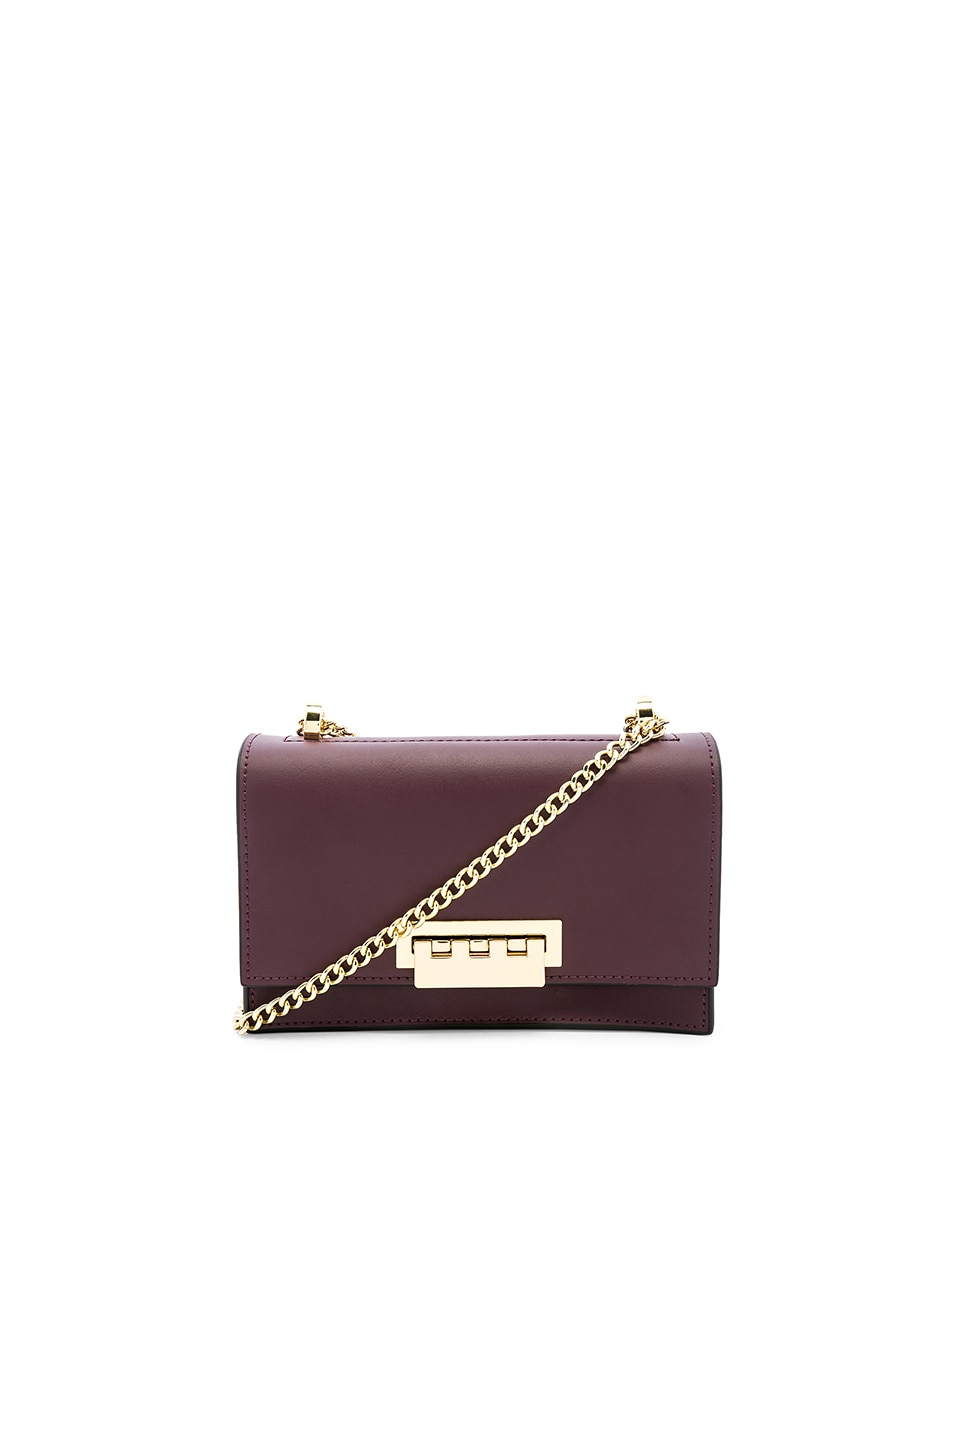 Zac Zac Posen Earthette Small Chain Shoulder Bag in Rum